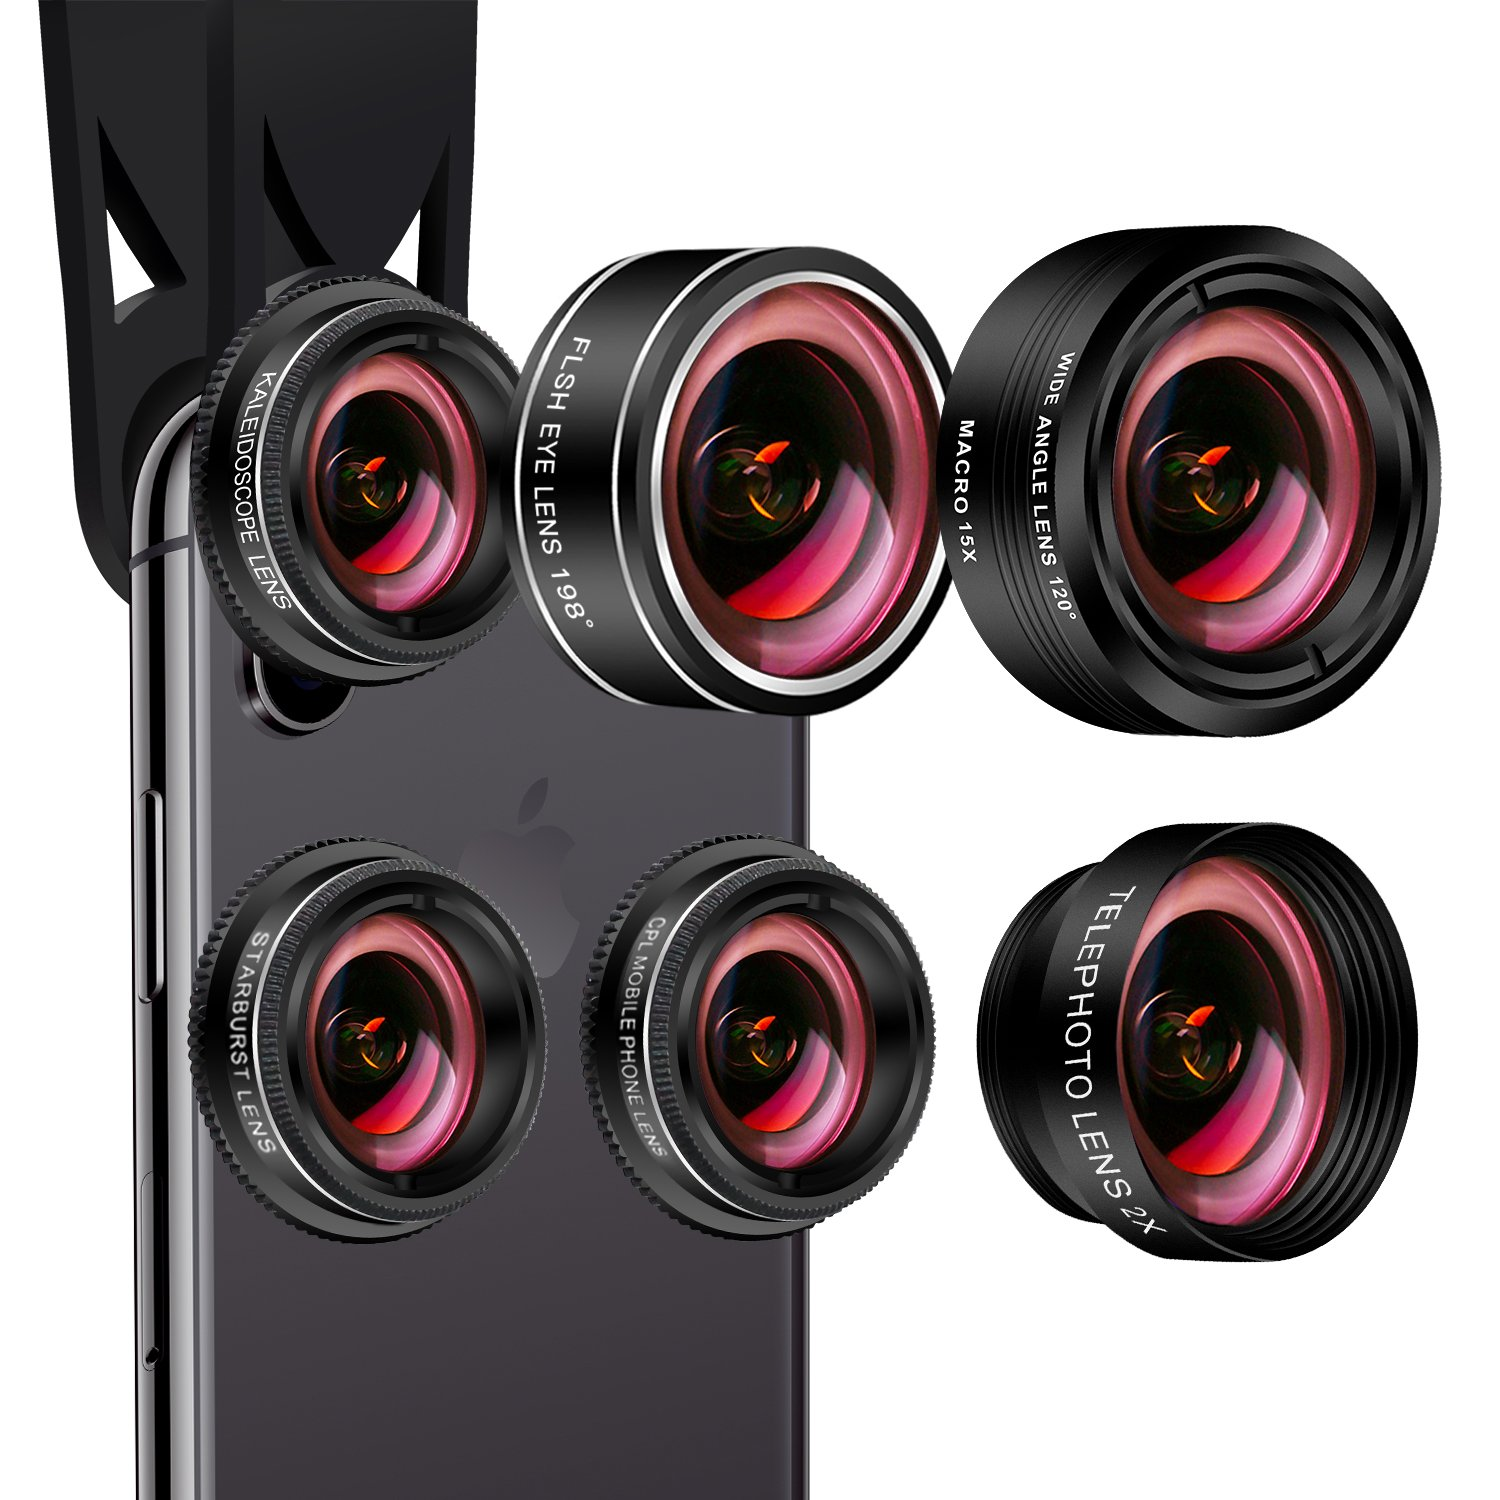 Cell Phone Camera Lens Kit,7 in 1 AiKEGlobal Wide Angle + Macro(Screwed Together), Fisheye, 2X Telephoto, CPL, Starbrust, Kaleidoscope Lens for iPhone X/8/7/6s/6 plus, Samsung, Most Smartphone